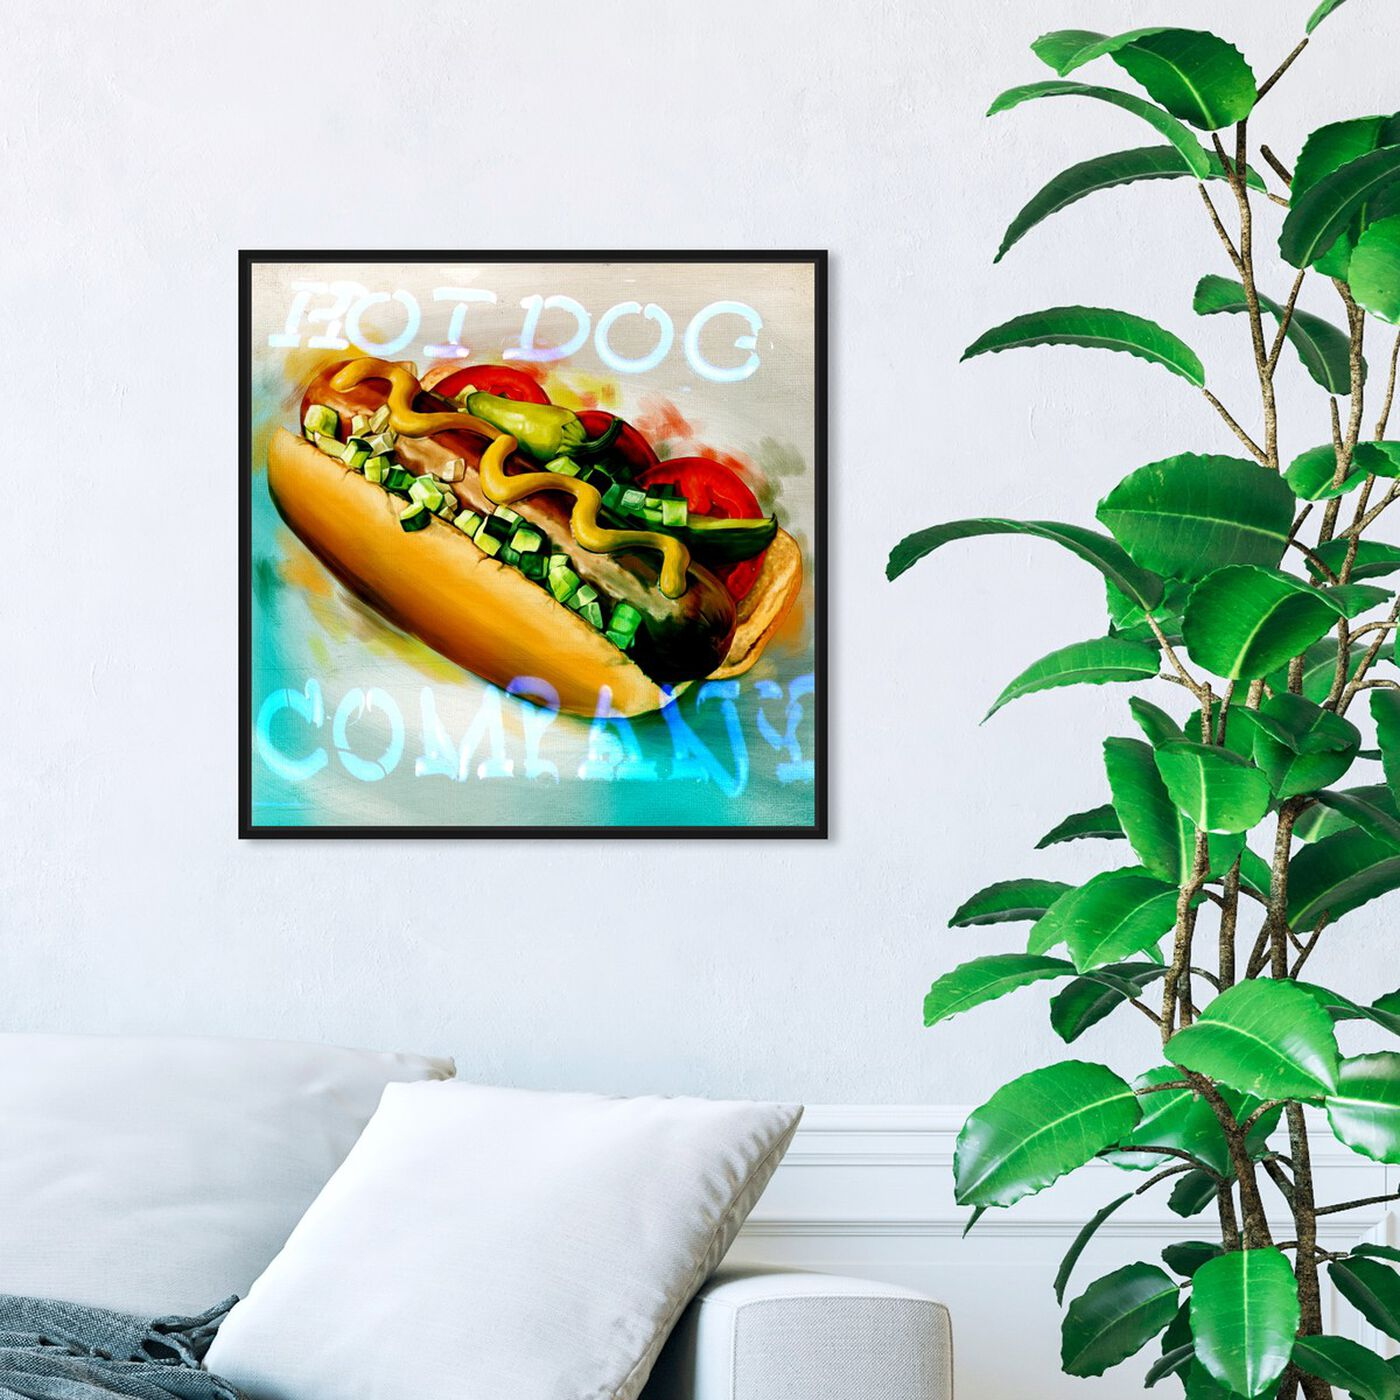 Hanging view of Hot Dog Company featuring food and cuisine and fast food art.